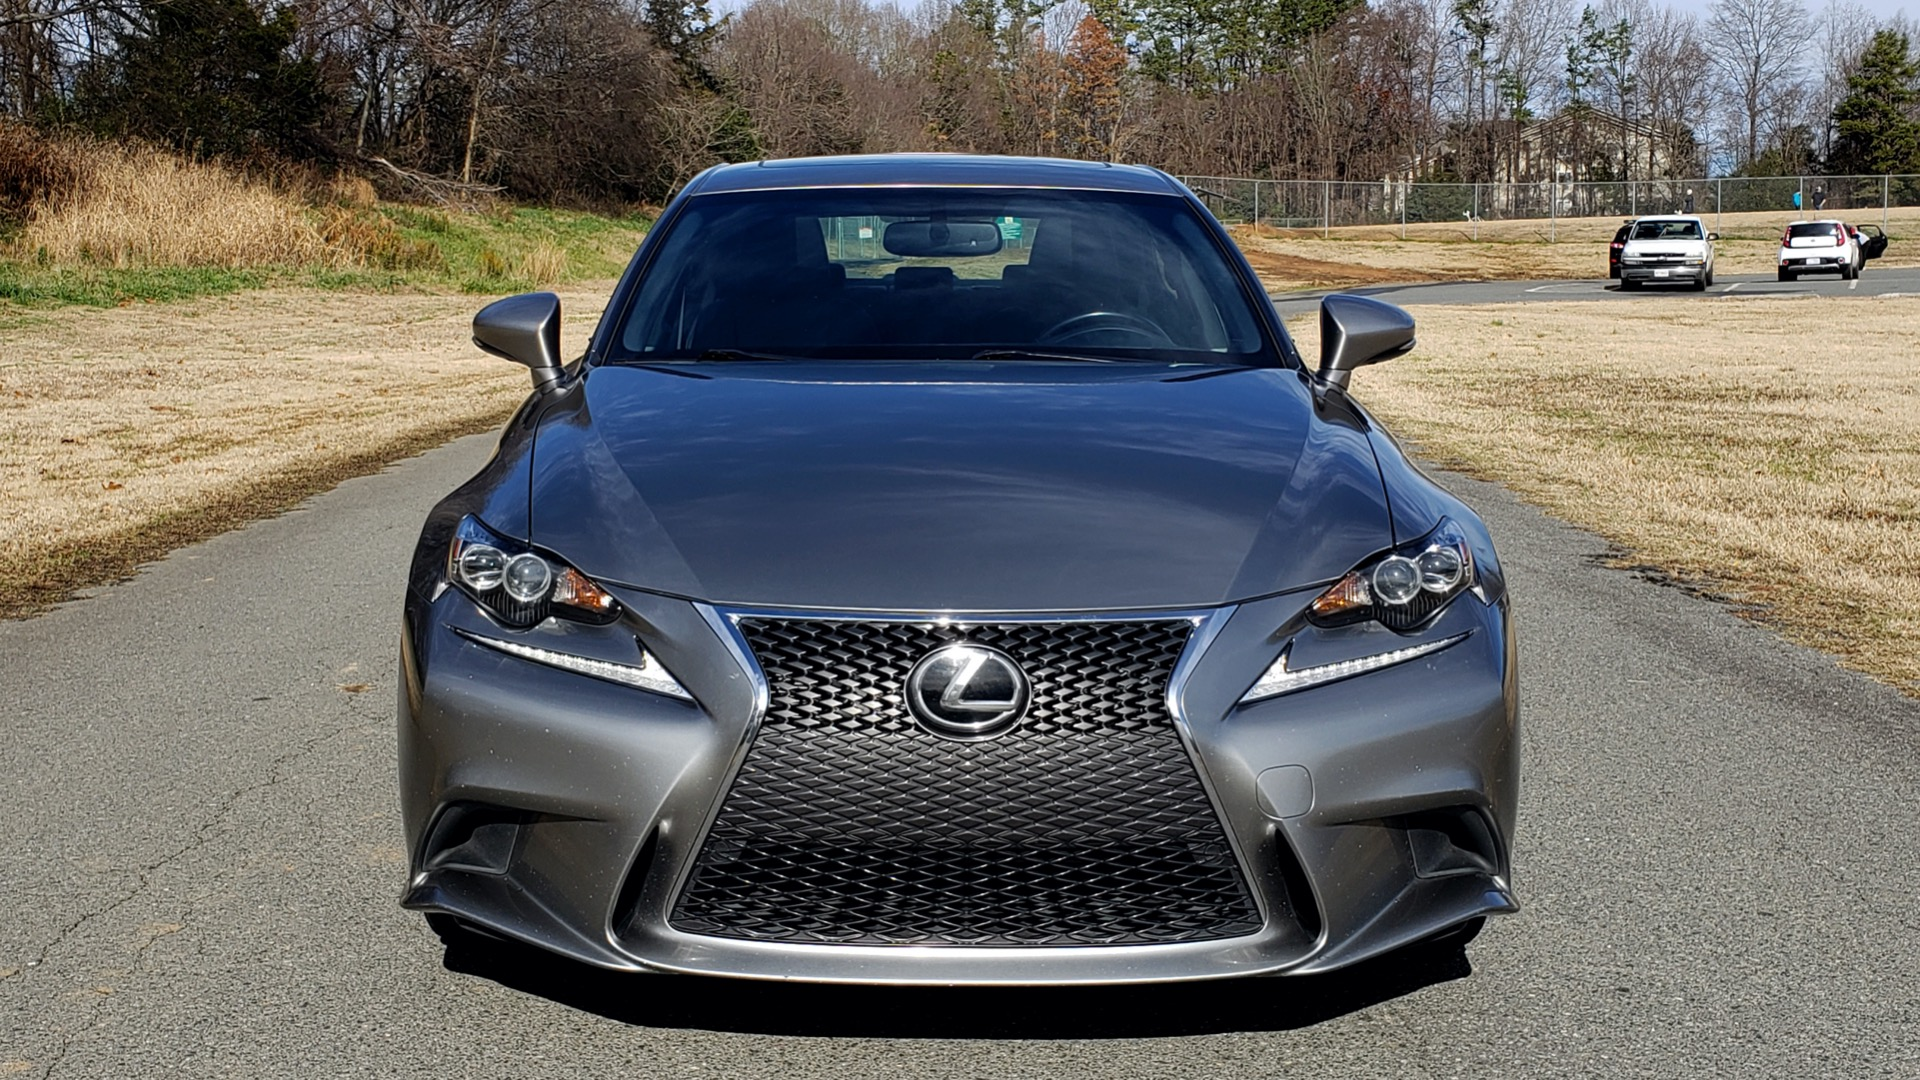 Used 2016 Lexus IS 200t F-SPORT / SUNROOF / NAV / BSM / DYNAMIC RADAR CRUISE for sale Sold at Formula Imports in Charlotte NC 28227 23